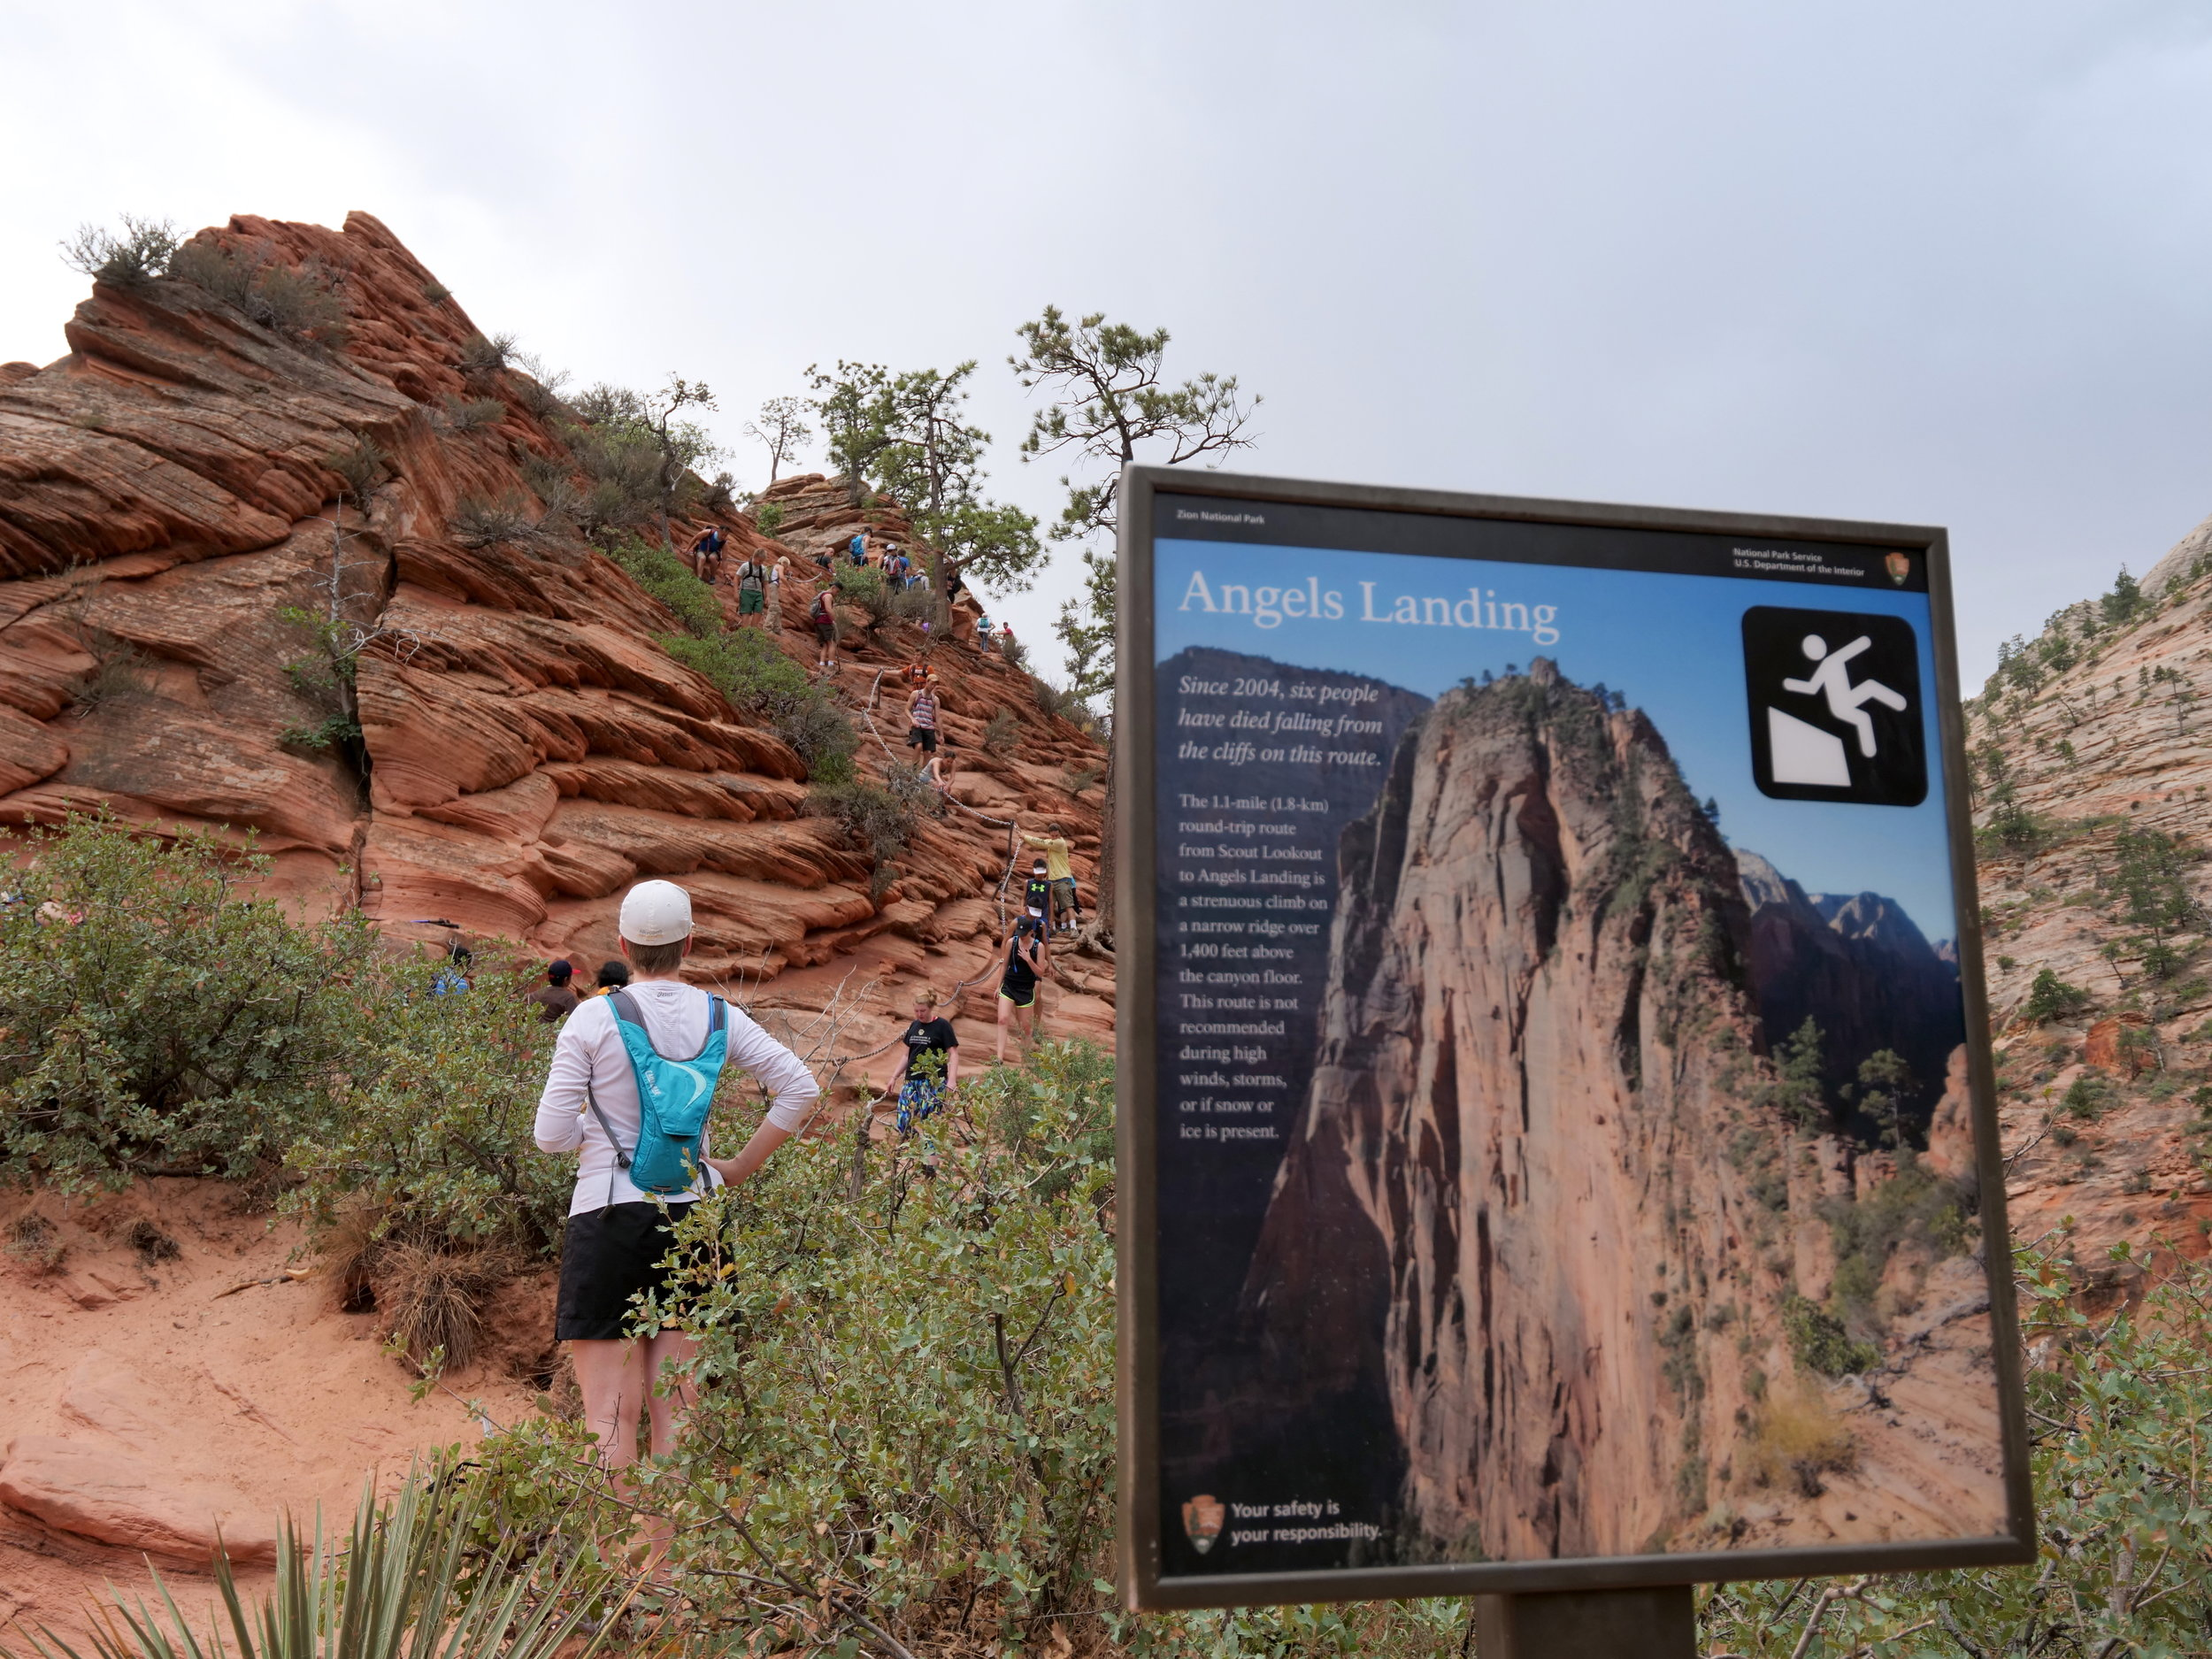 Angel's Landing warning sign